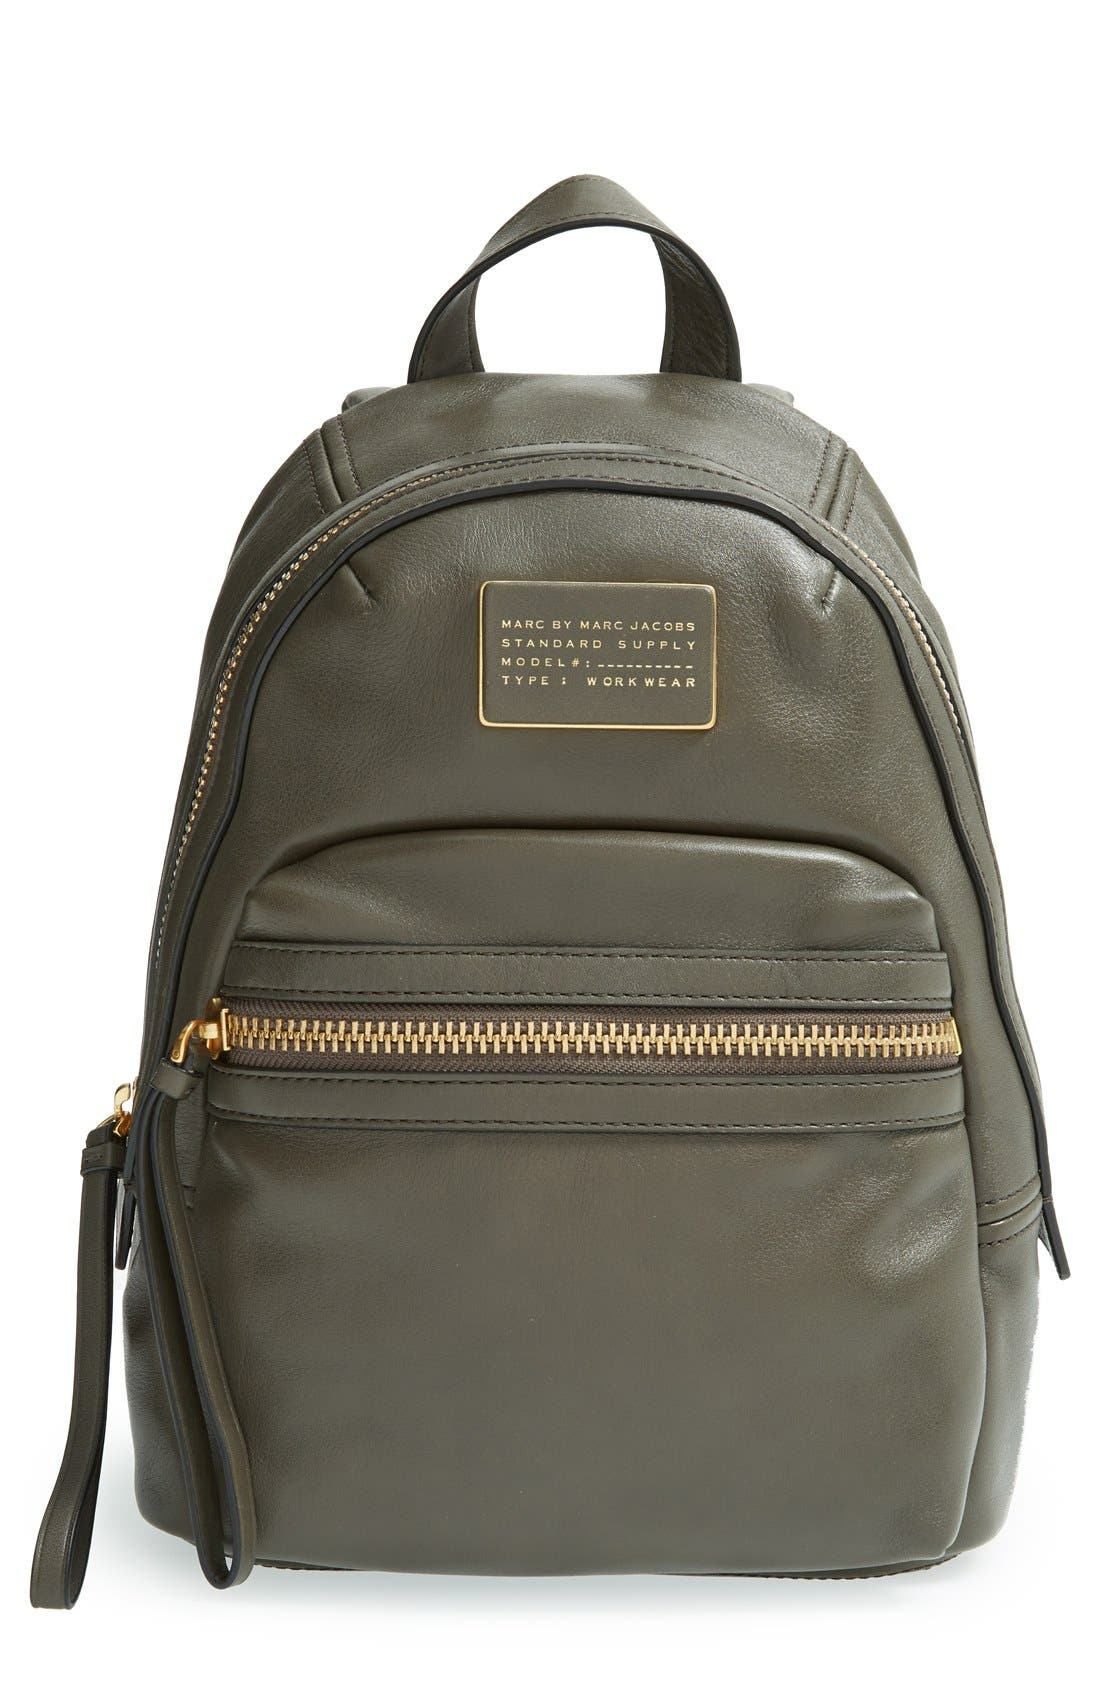 Alternate Image 1 Selected - MARC BY MARC JACOBS 'Third Rail' Backpack